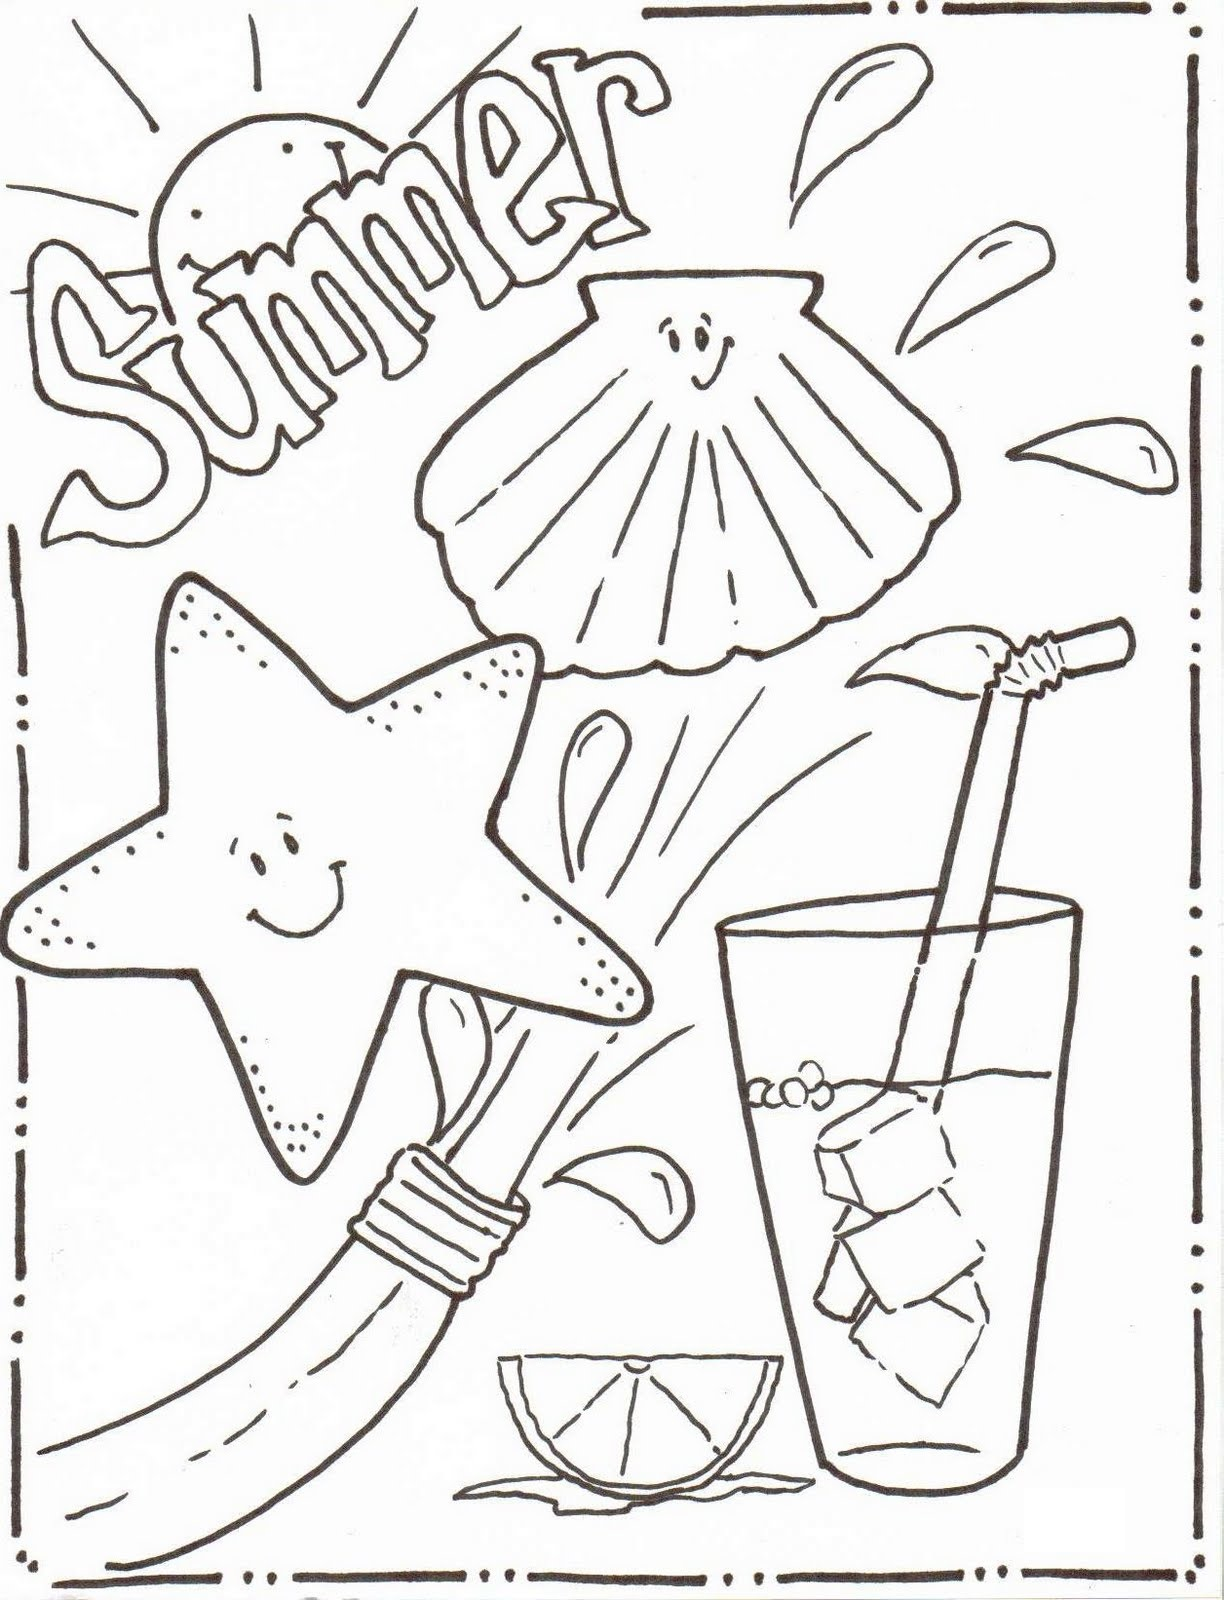 Fun Printable Coloring Activity Pages | Learning Printable